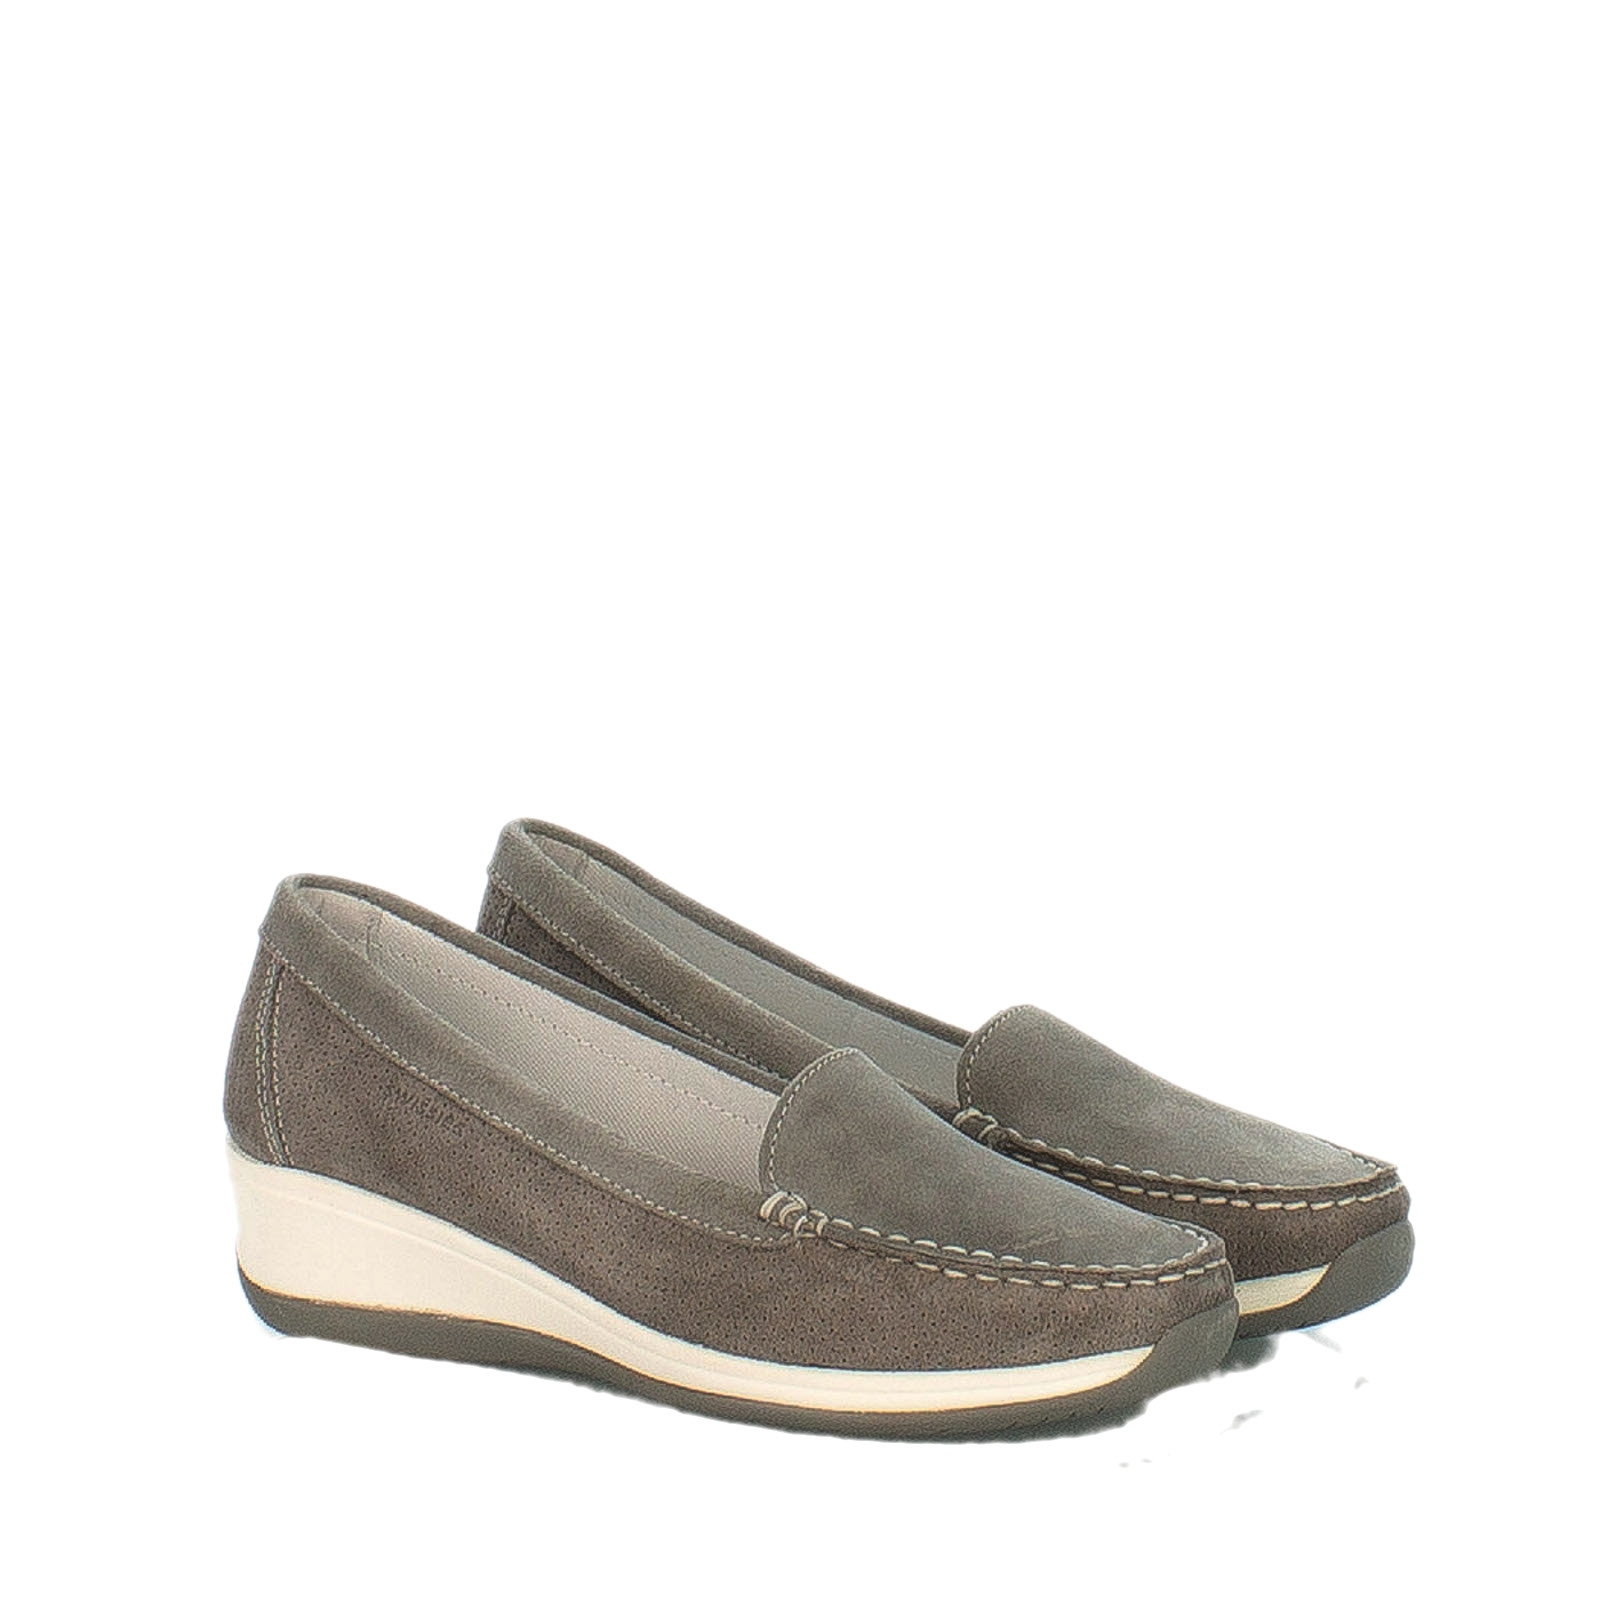 moccasin suede shoes wedge dove swissies